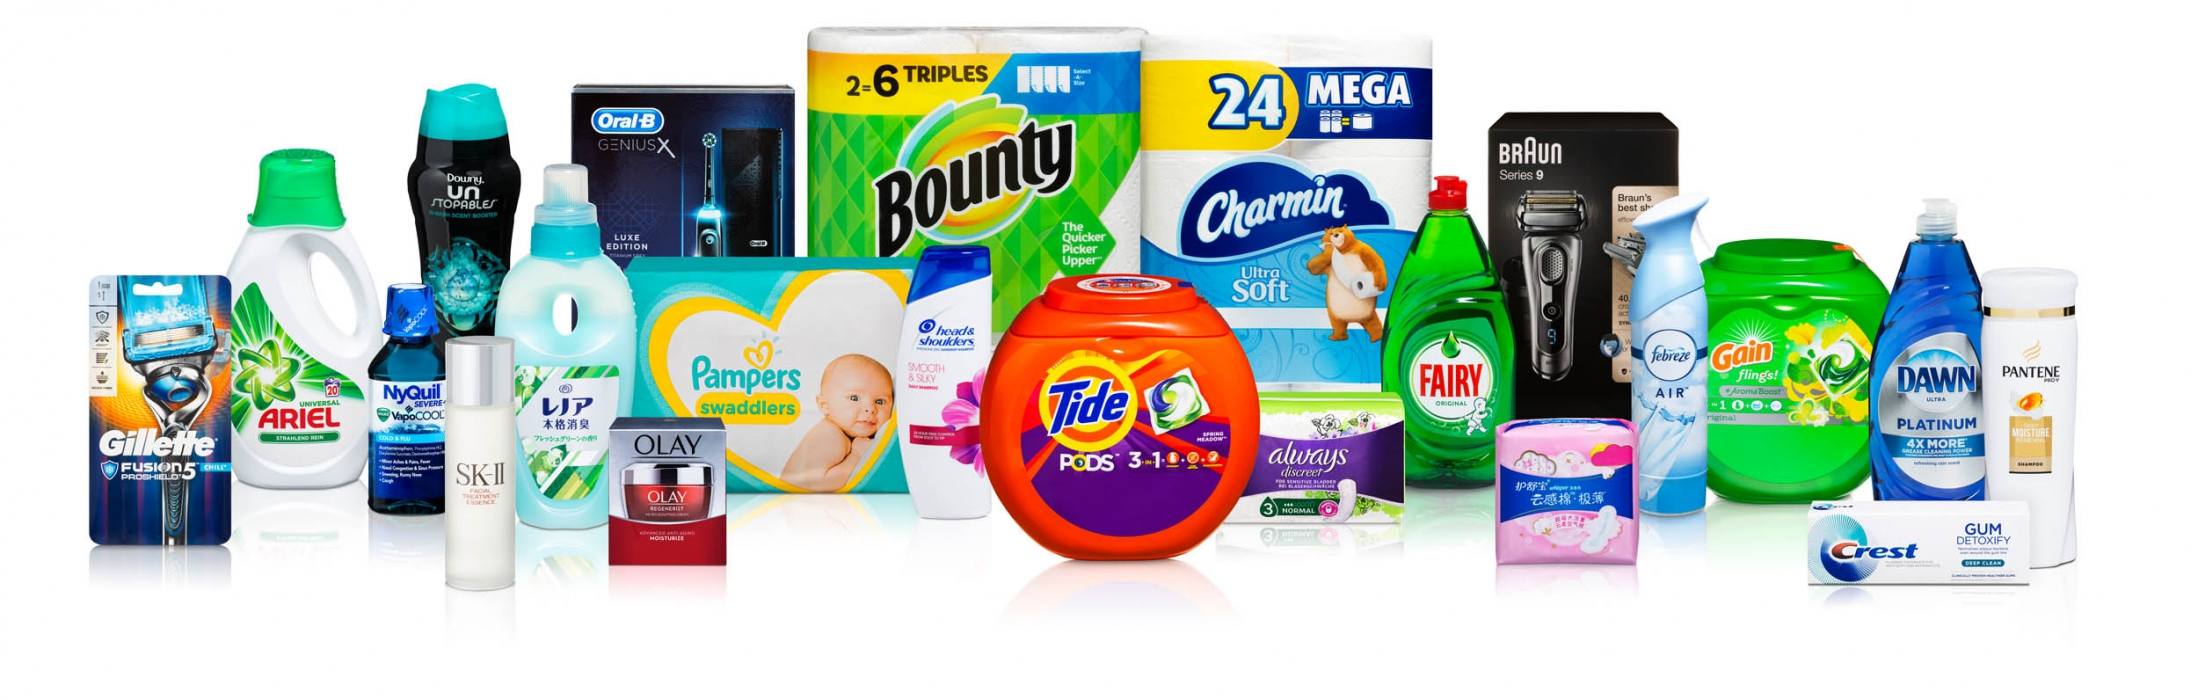 Product family of P&G cleaning and care products - P&G product photography